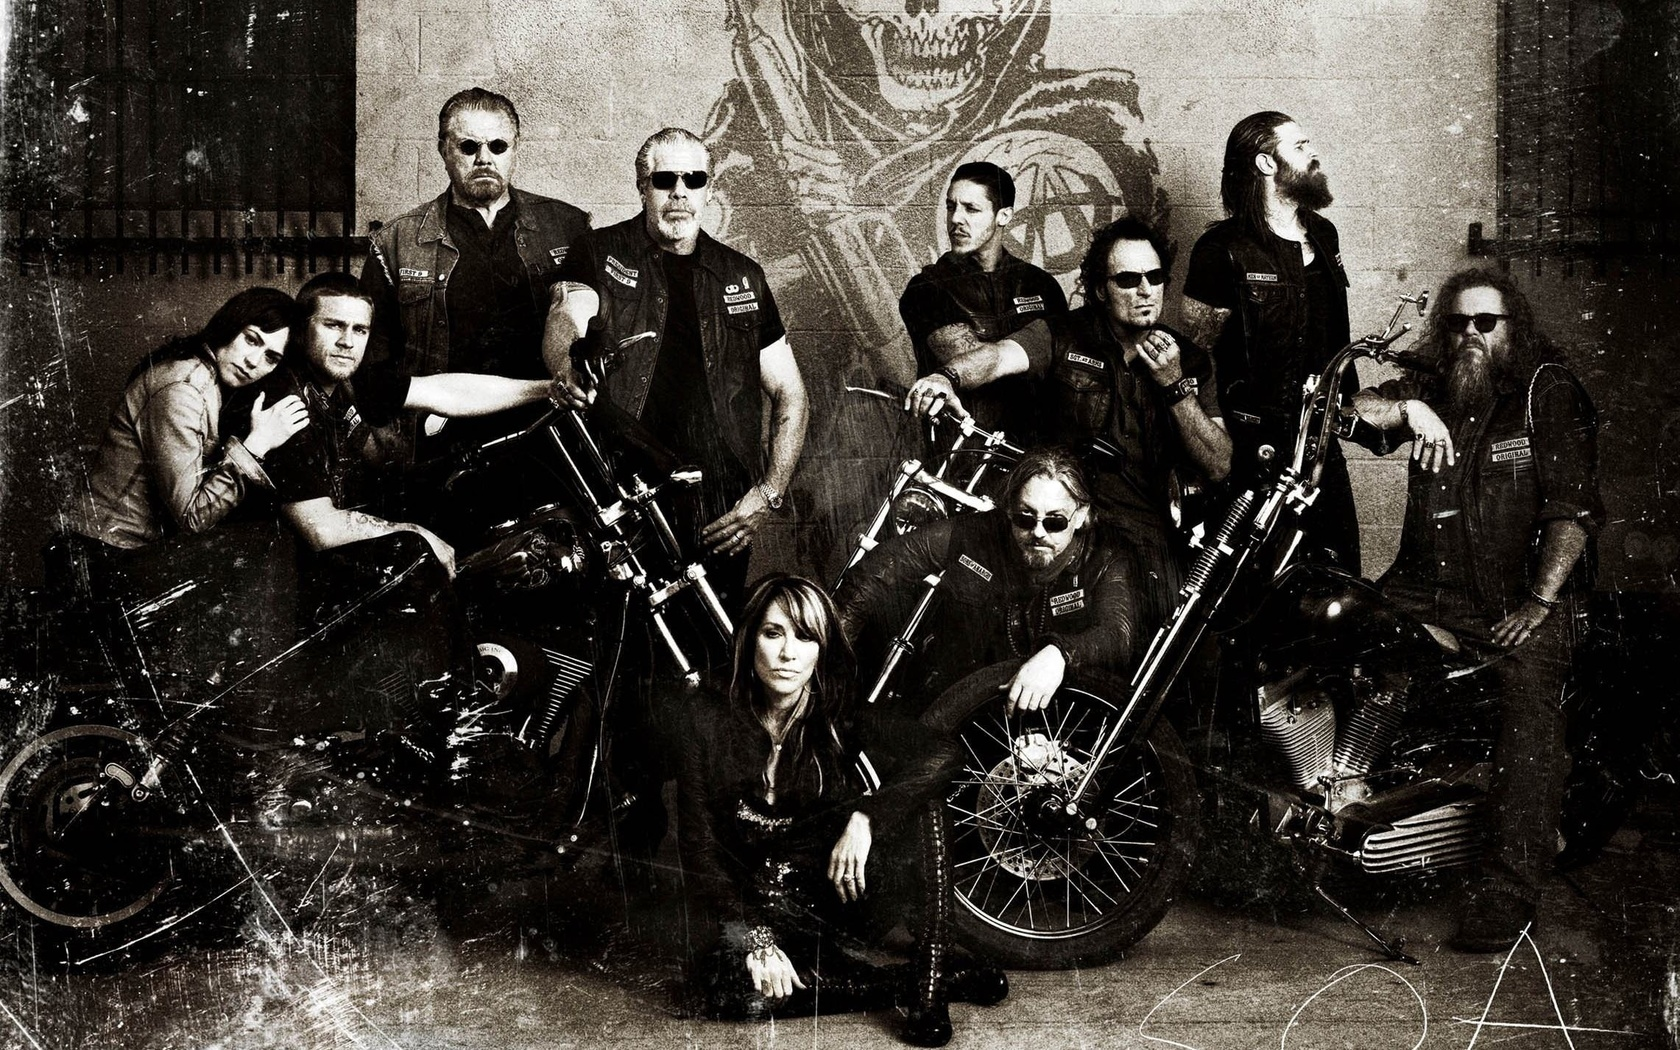 Sons of anarchy pictures for sale DIY Photo Booth Supplies & Backdrops Oriental Trading